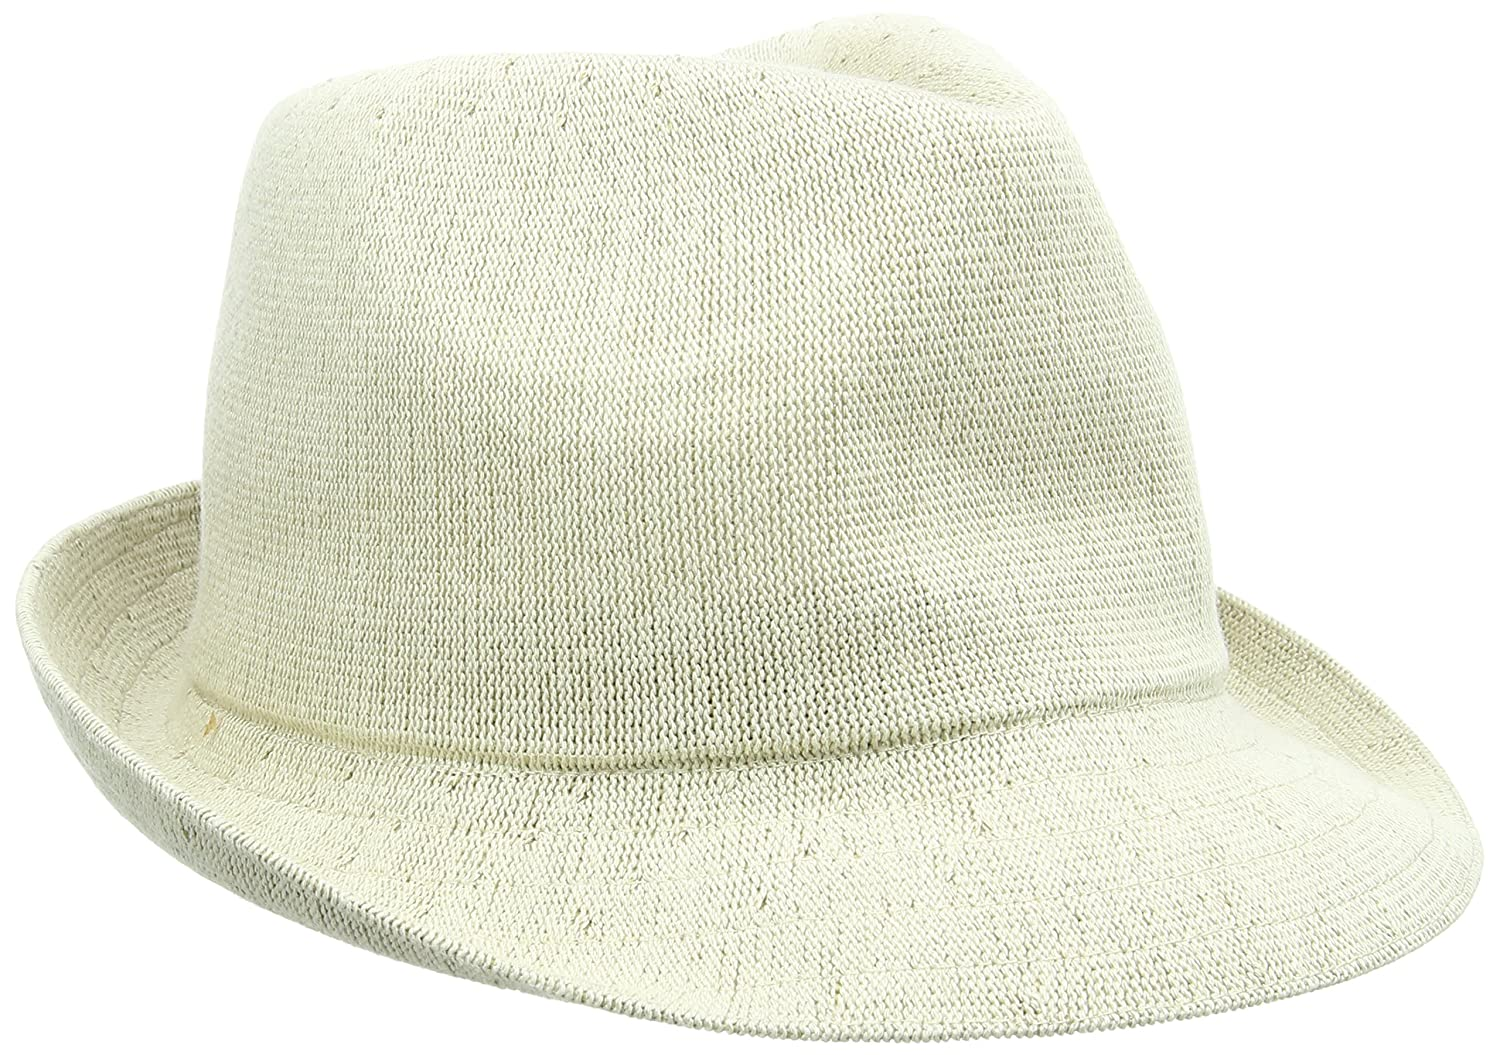 Kangol Men s Bamboo Arnold Trilby at Amazon Men s Clothing store  Fedoras 01c1c83f9954